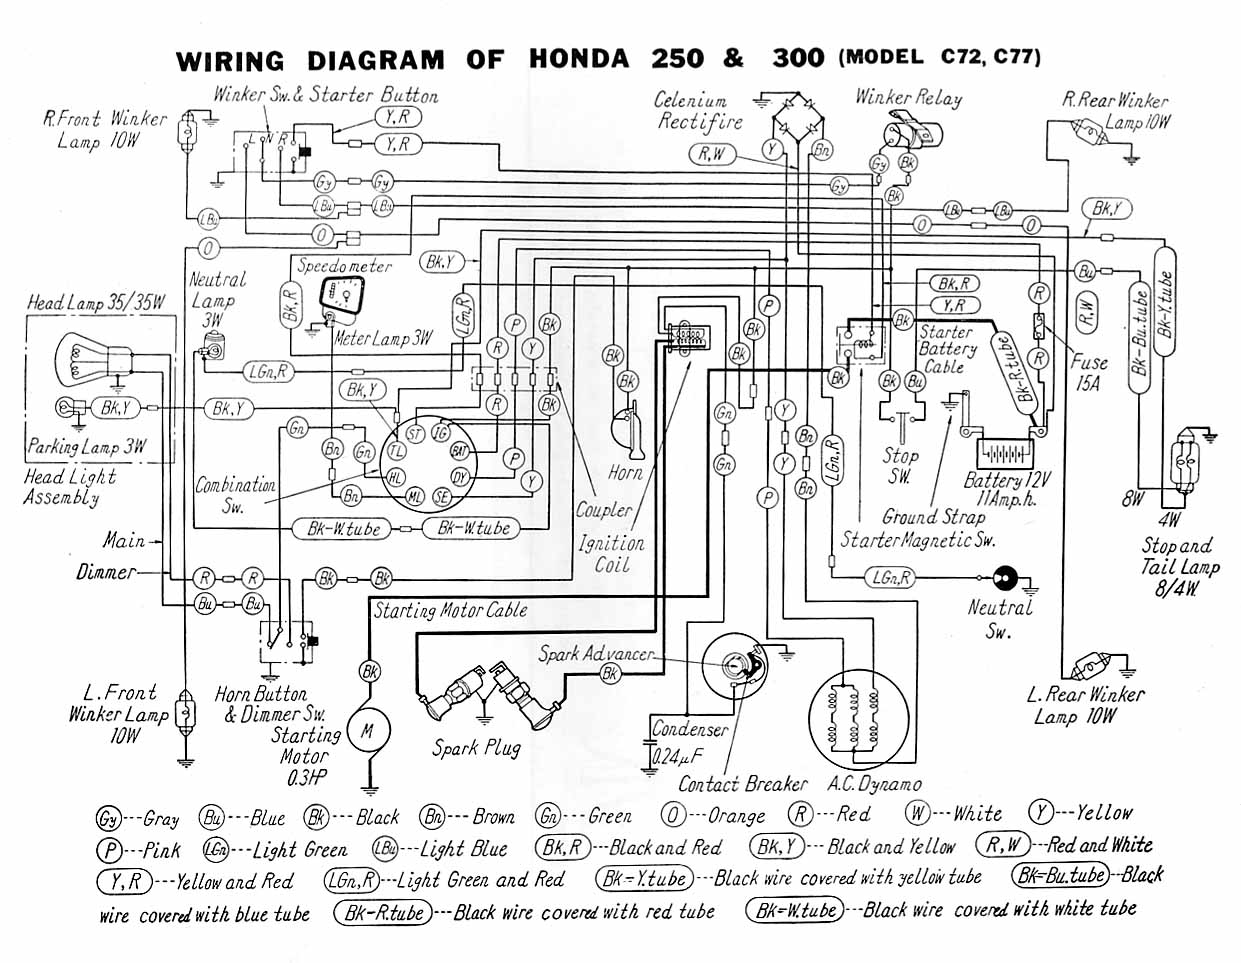 C77 wiring diagrams xj650 maxim wiring diagram at gsmx.co